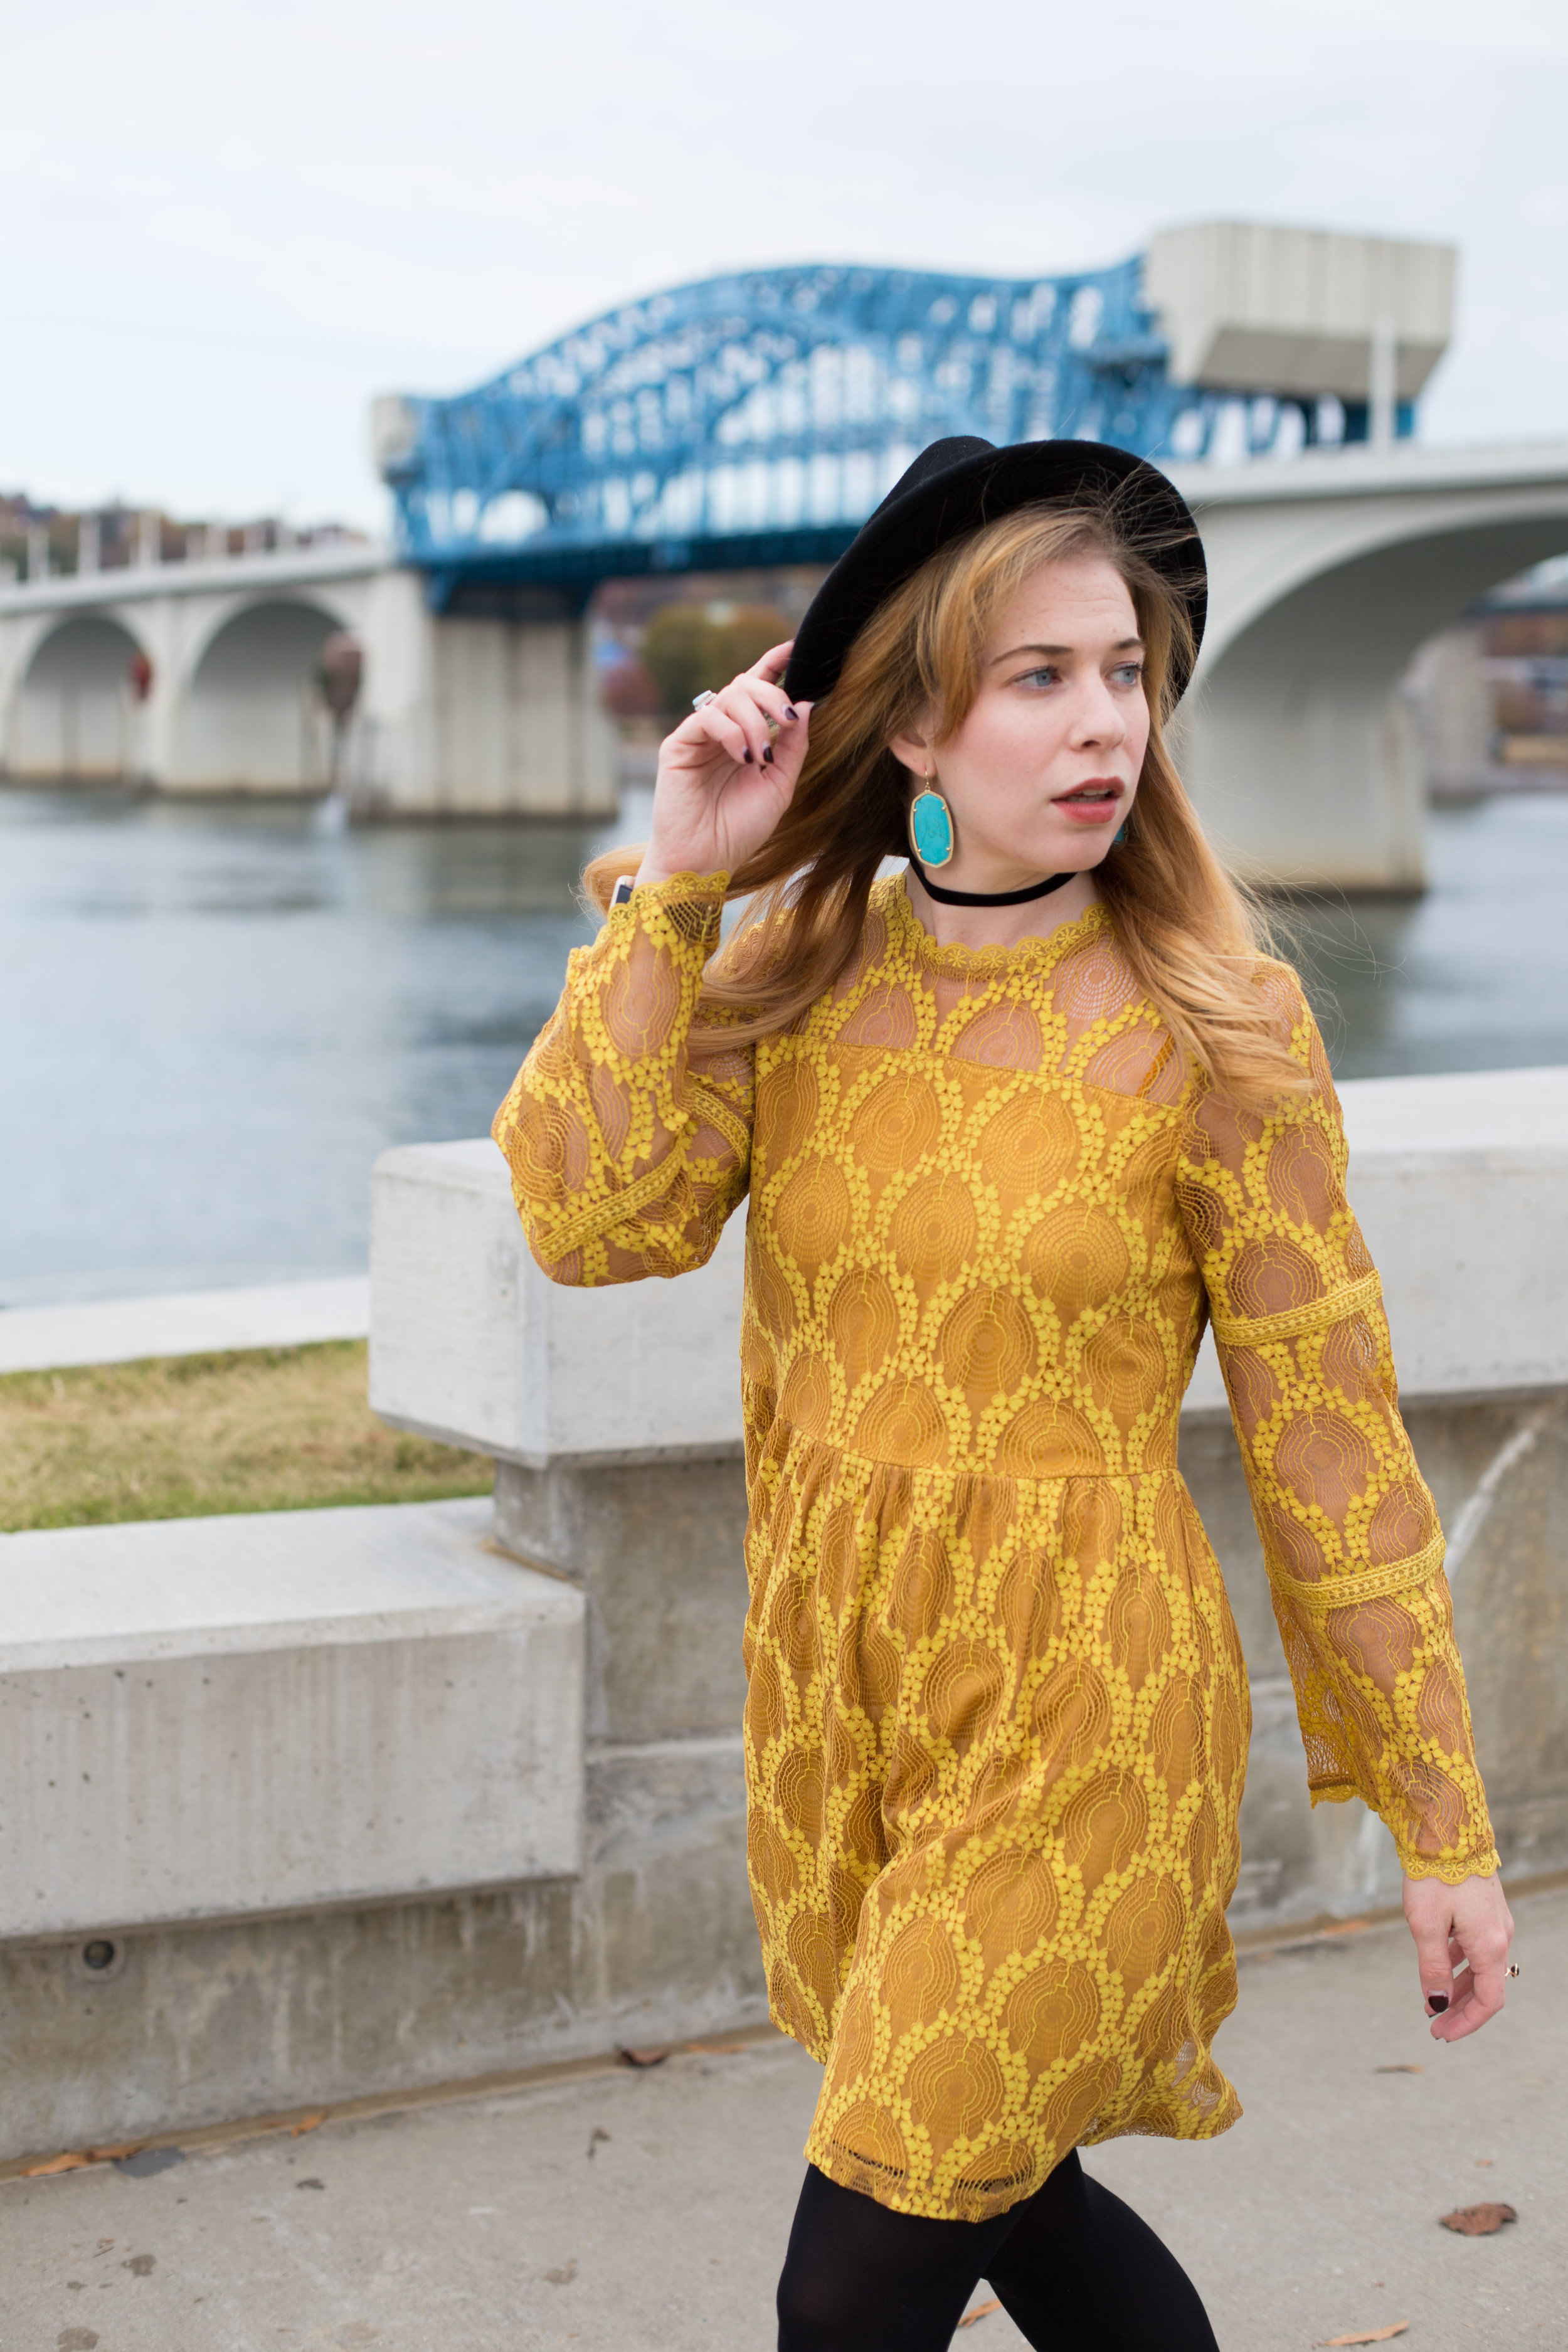 This yellow dress looks like a pricy statement piece, but was actually a bargain buy!